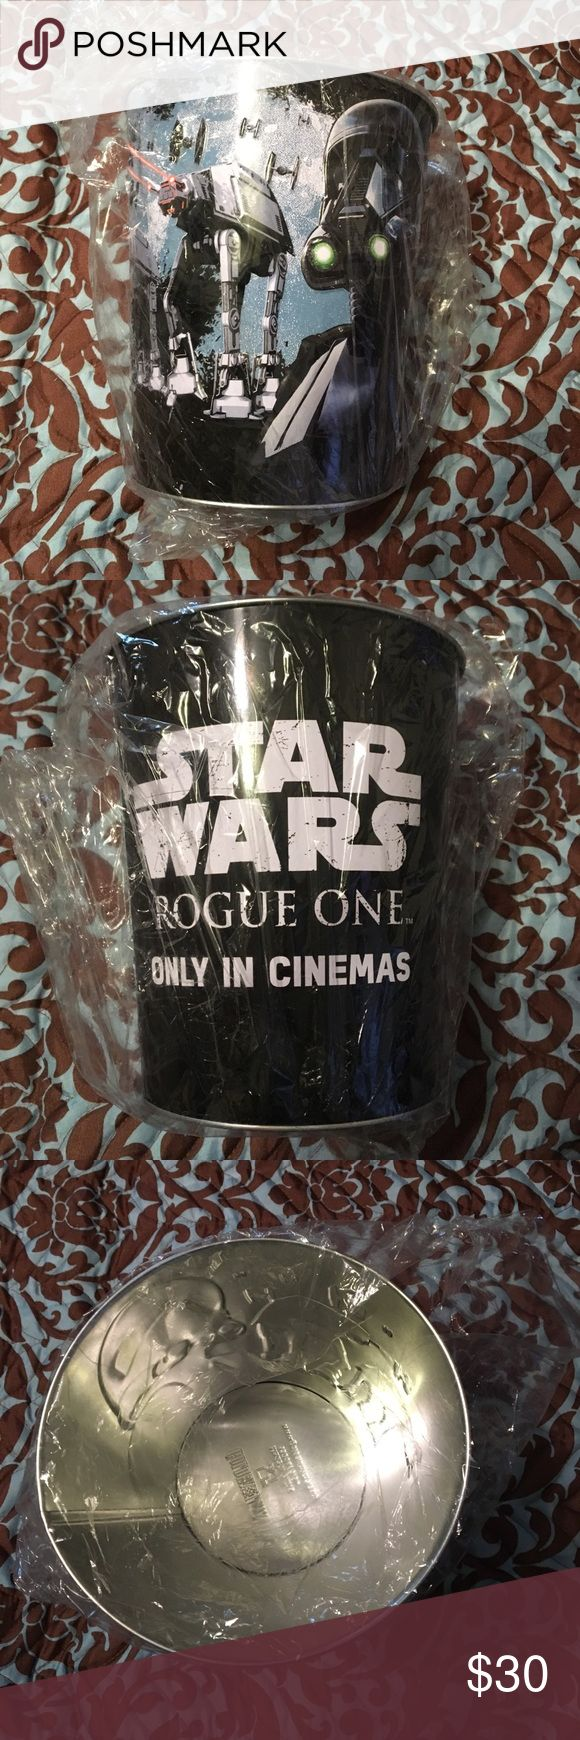 Star Wars popcorn tin Brand new Star Wars rouge one storm trooper popcorn tin. Bought from local movie theater never used. Disney Other